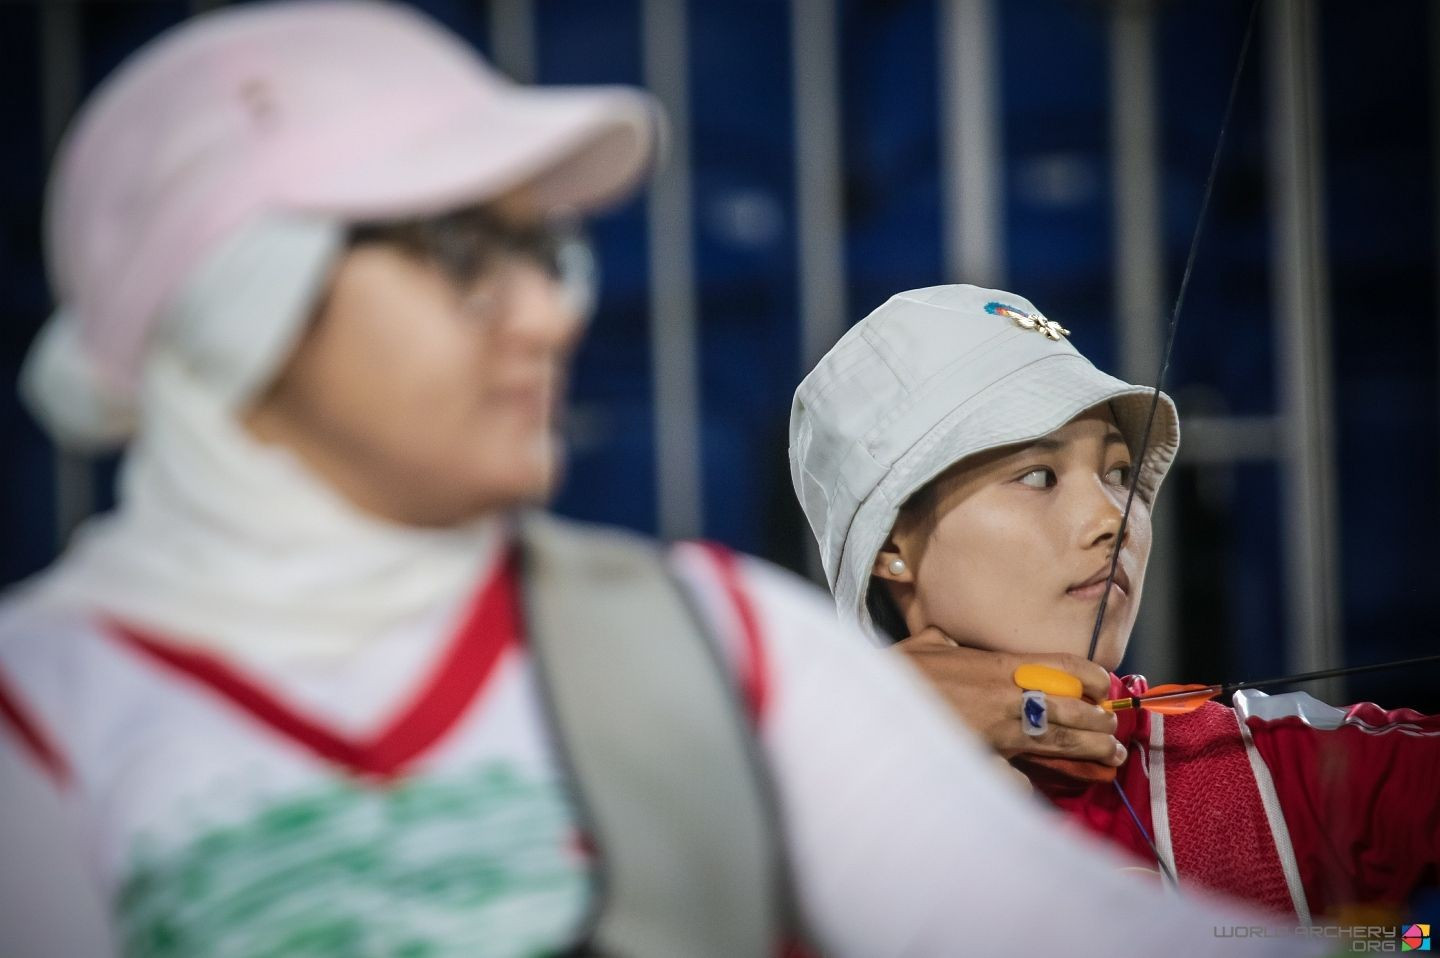 Nemati gets ahead in World Archery Para Championships battle with Wu